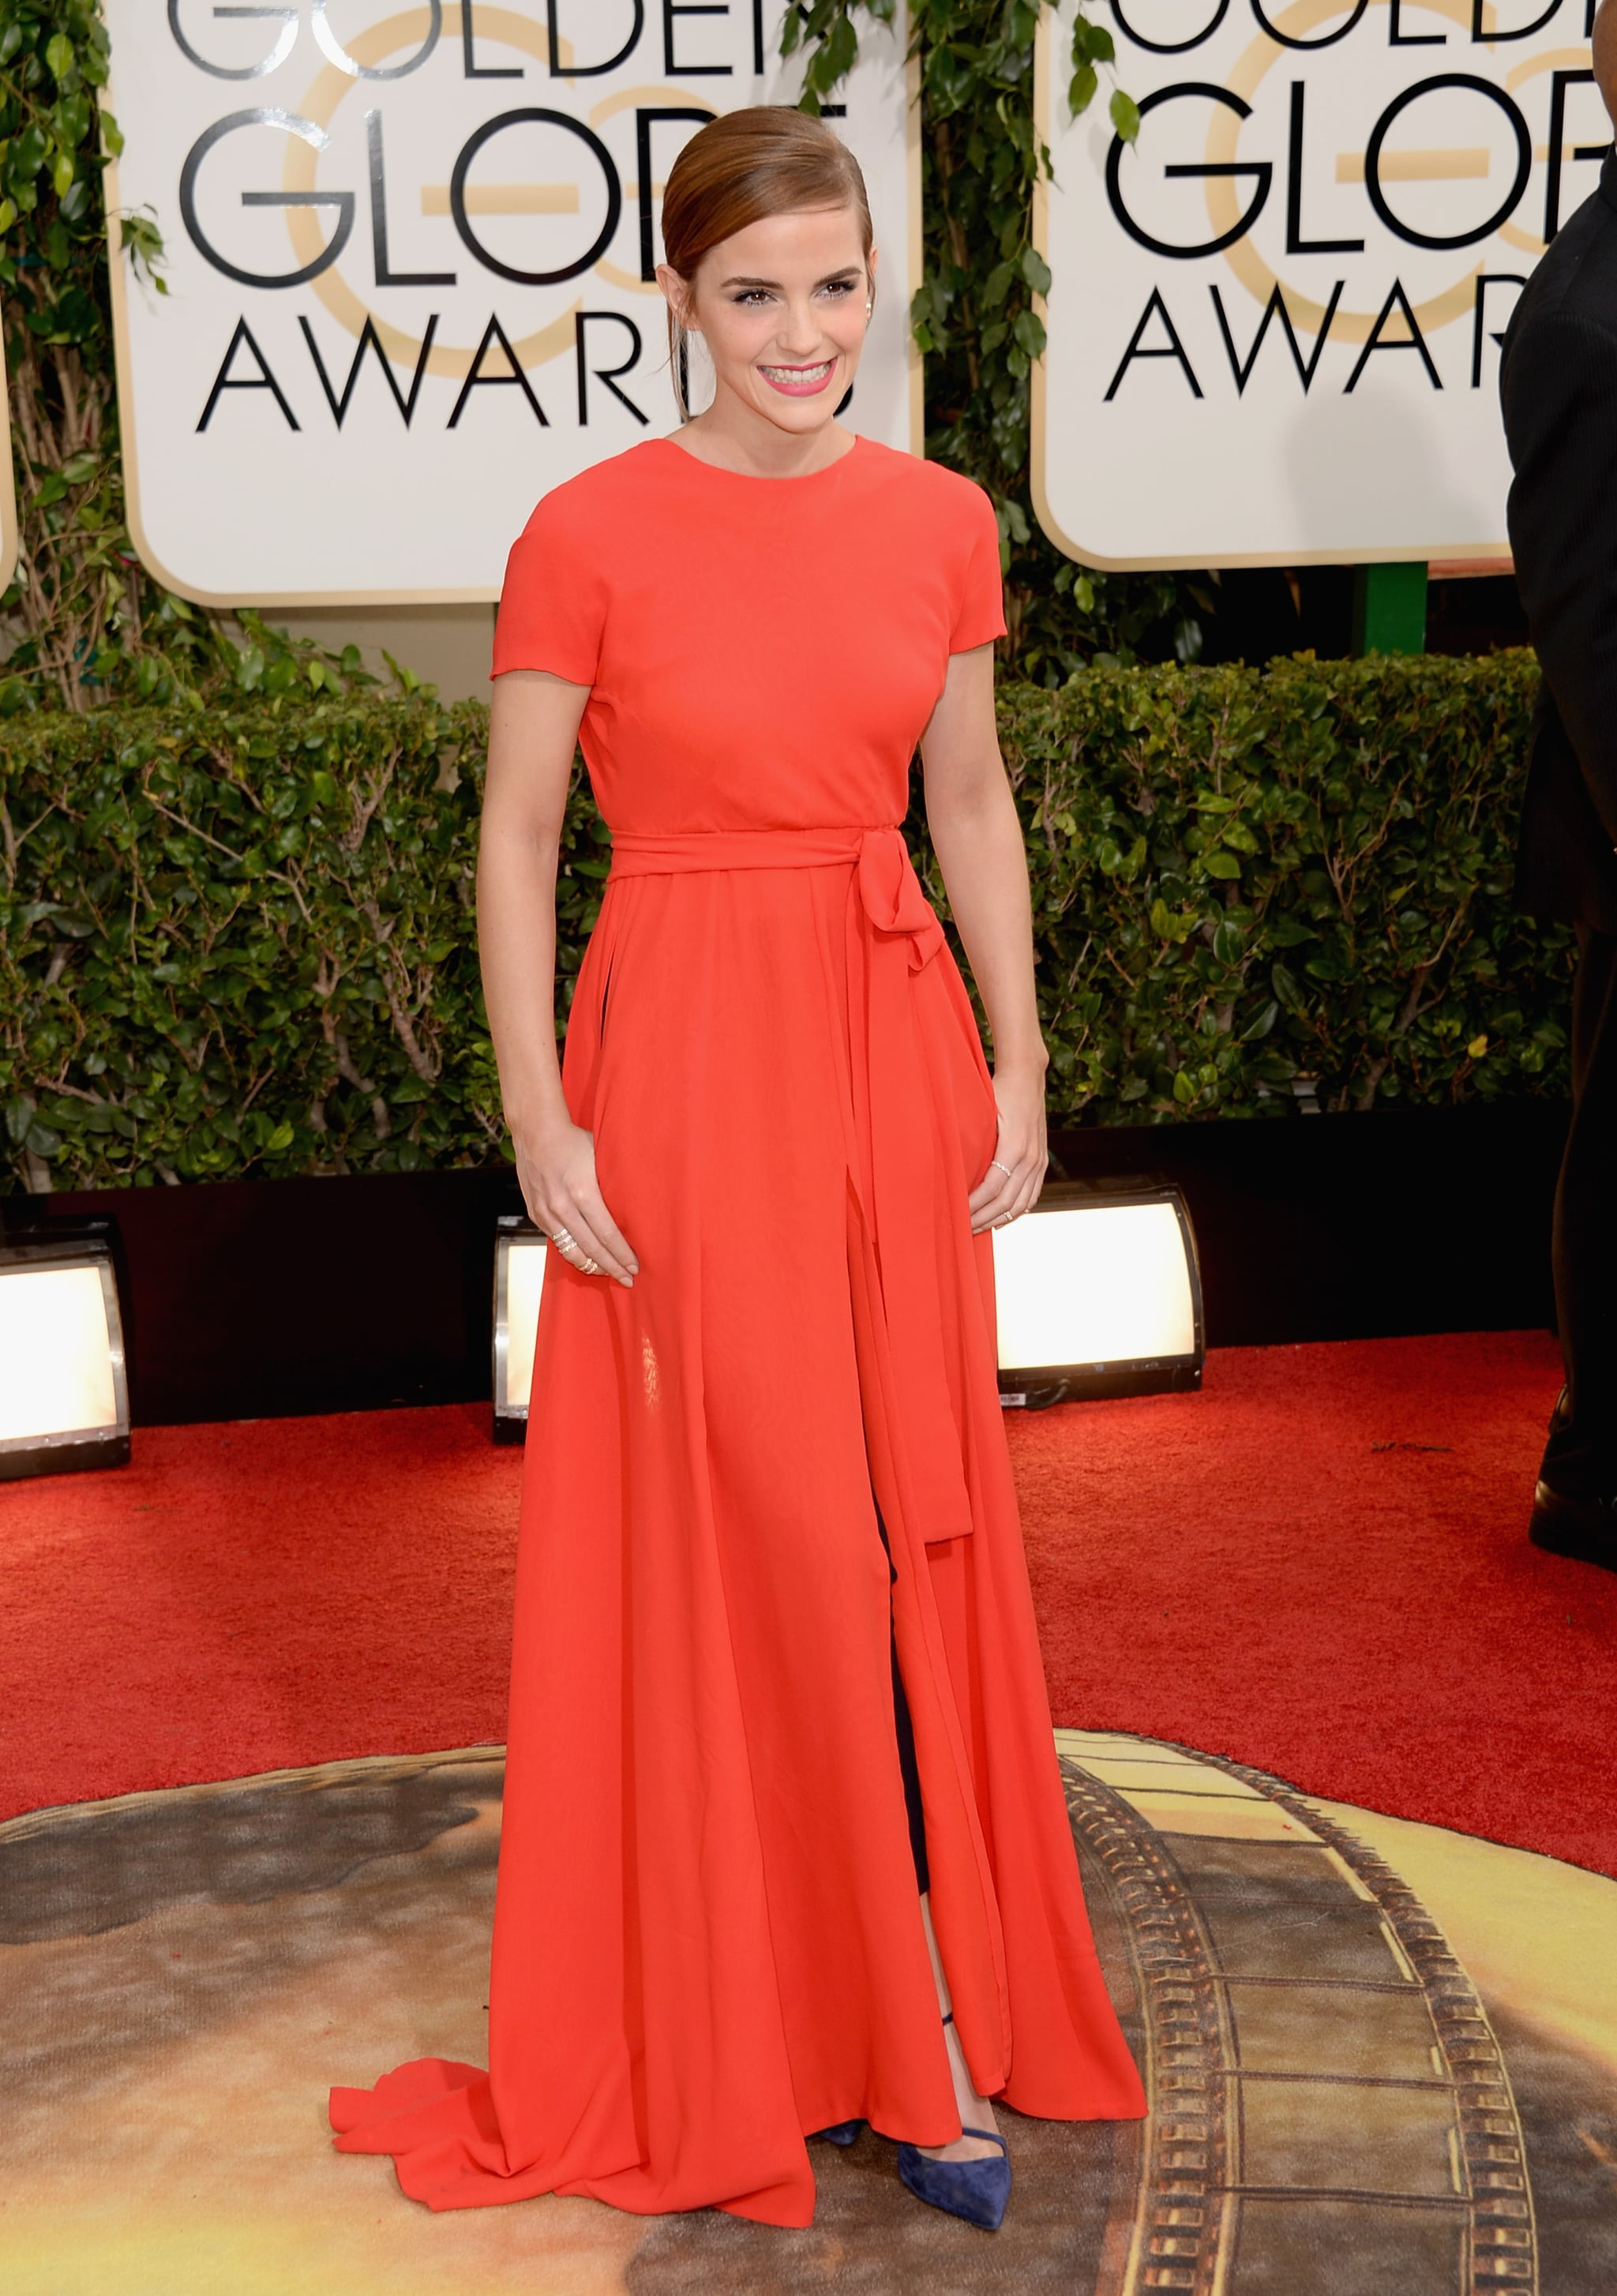 Emma Watson shined in a red dress with black pants underneath.